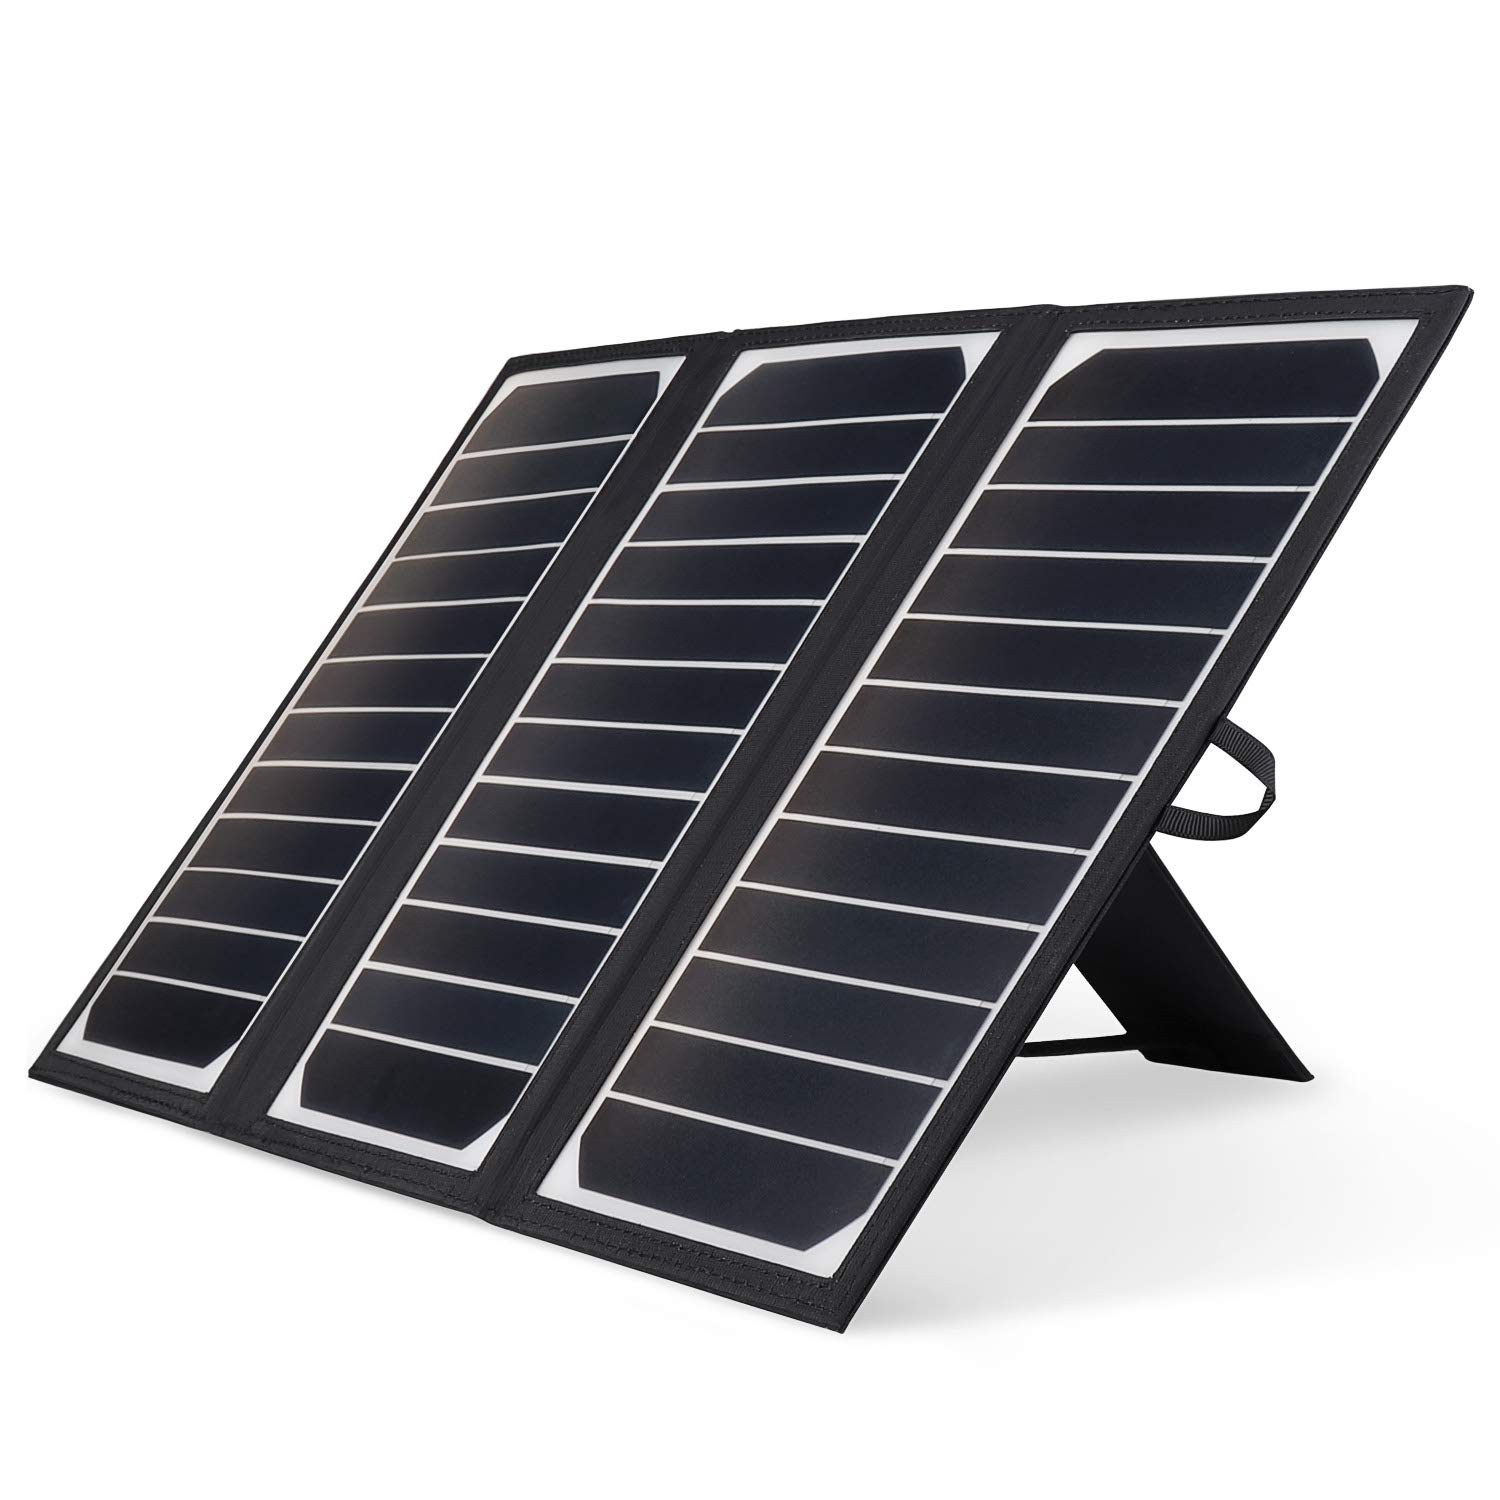 Kingsolar Solar Charger 21W Portable Solar Panel Charger with 2 USB Ports, Waterproof Camping Foldable Portable Solar Charger for Cell Phone Tablet GPS iPhone iPad Camera Electronic Device by KINGSOLAR